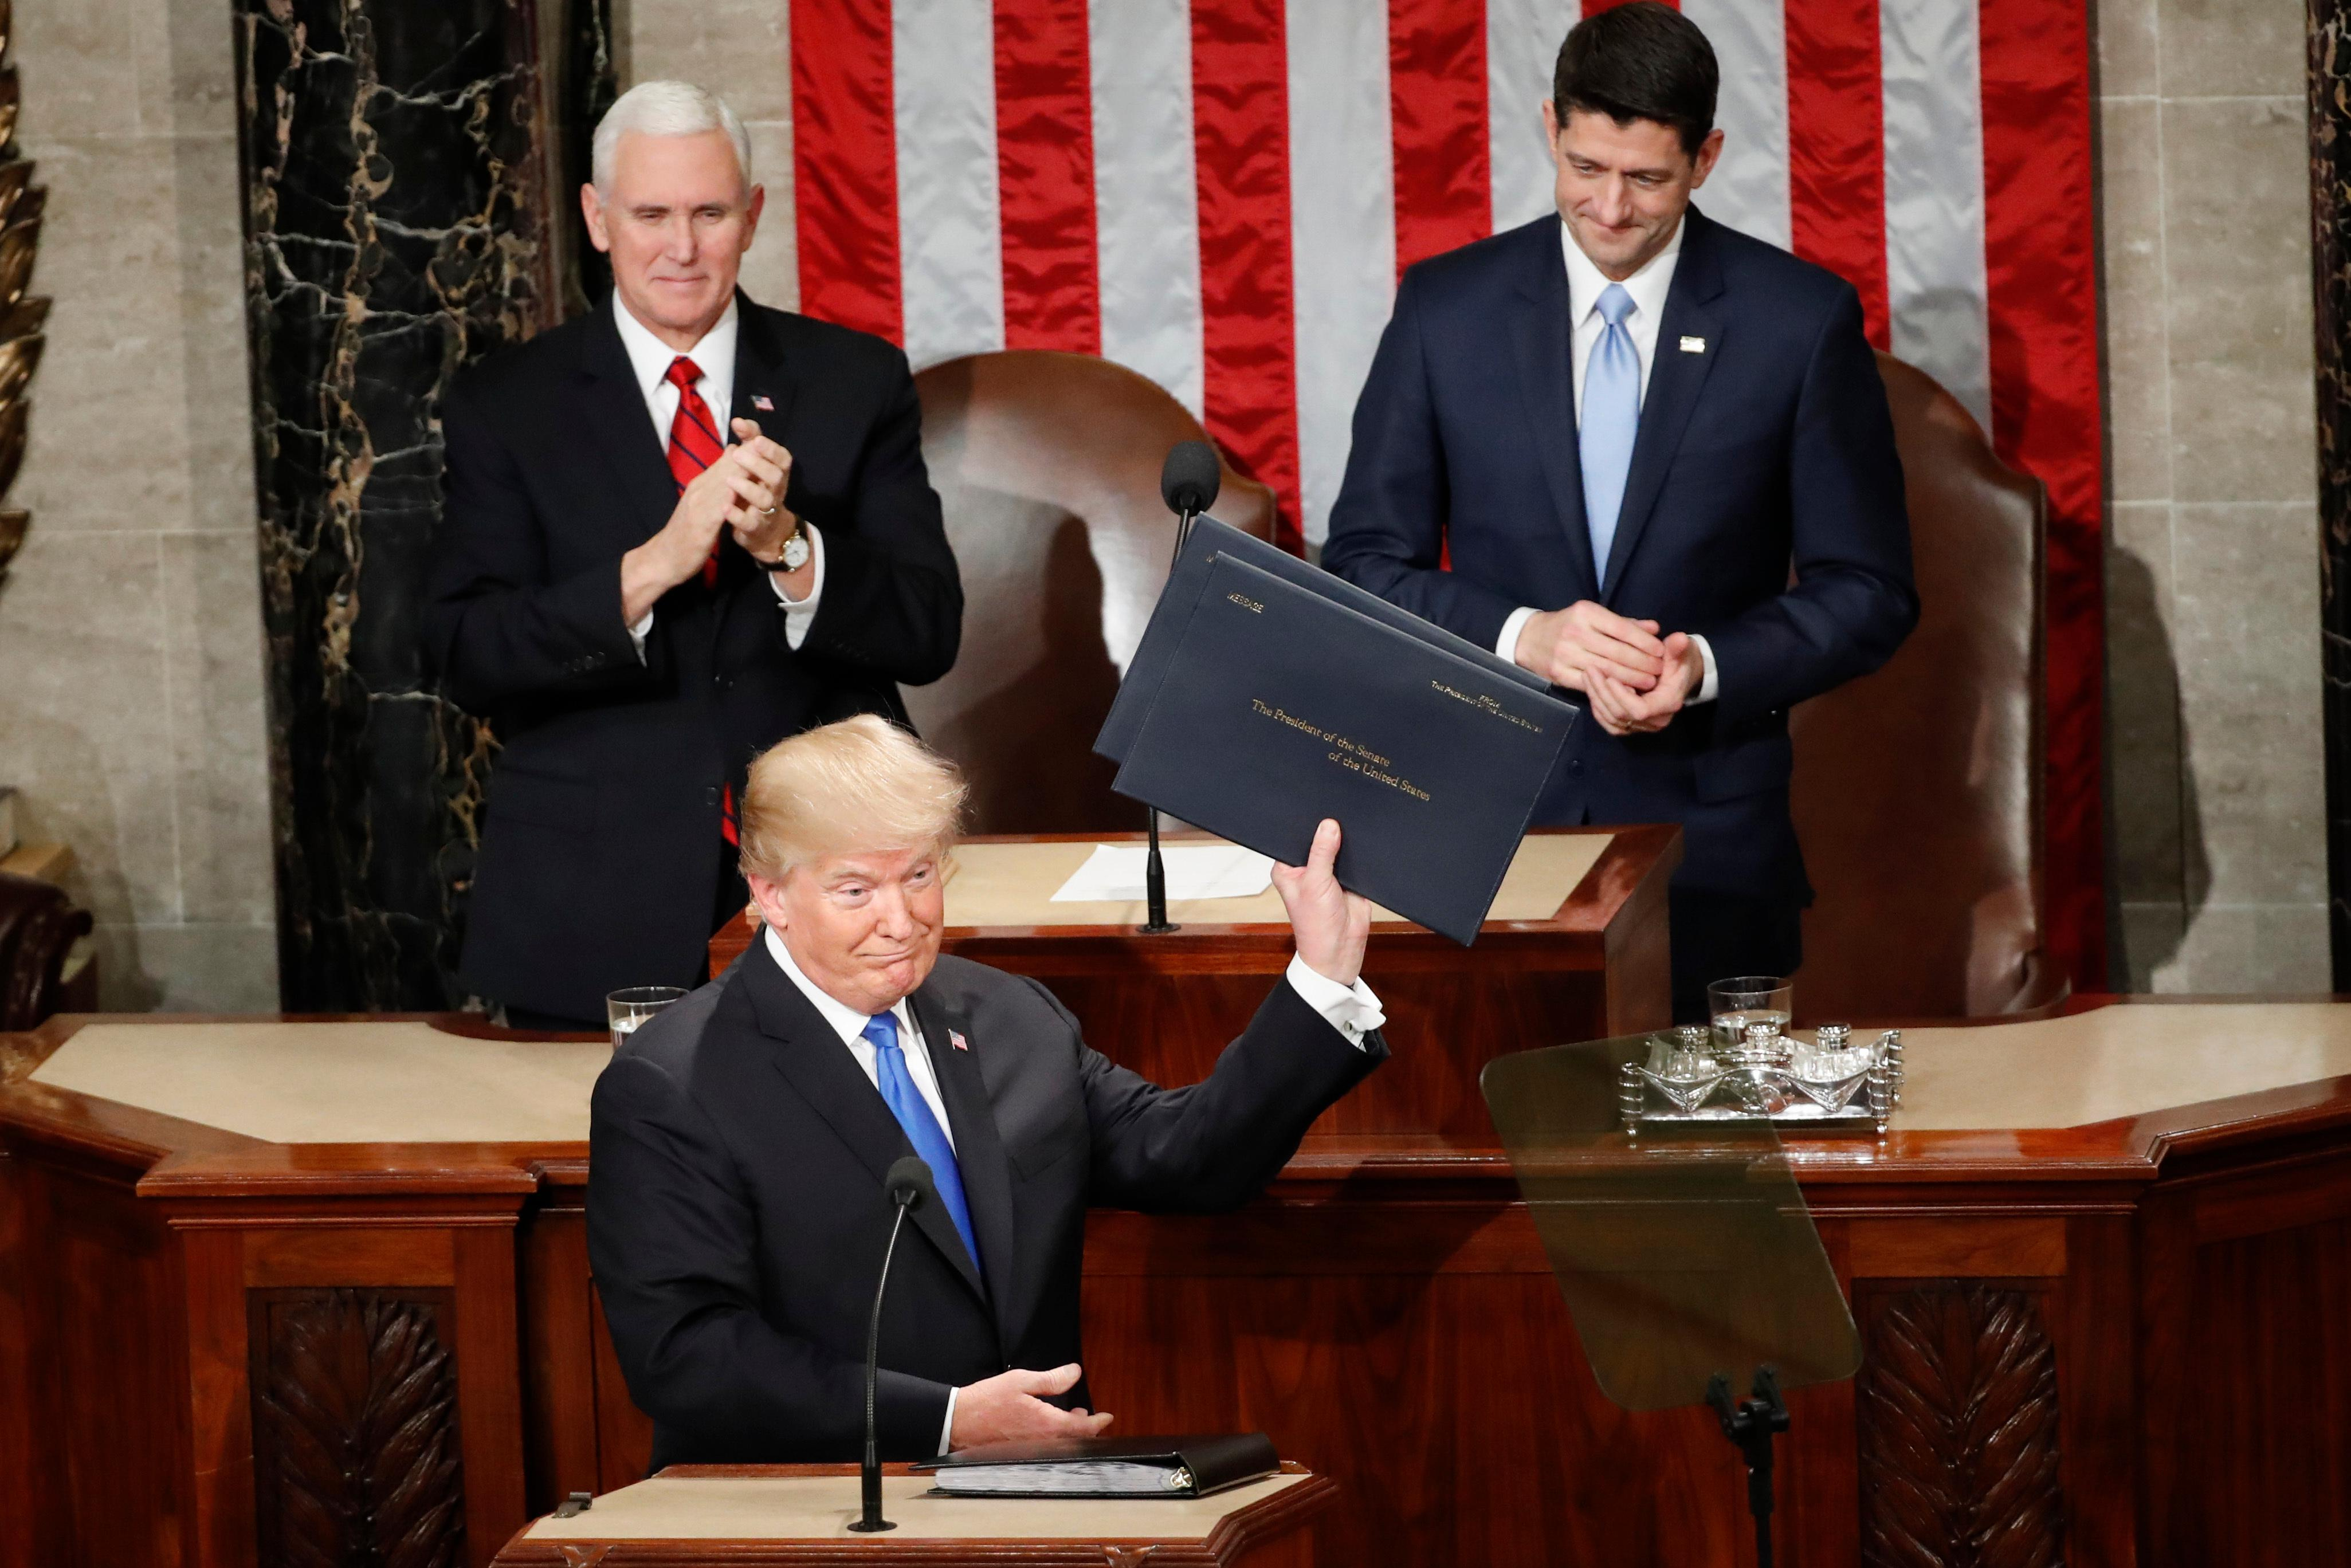 President Donald Trump holds up copies of his speech before the State of the Union address to a joint session of Congress on Capitol Hill in Washington, Tuesday, Jan. 30, 2018. (AP Photo/Pablo Martinez Monsivais)